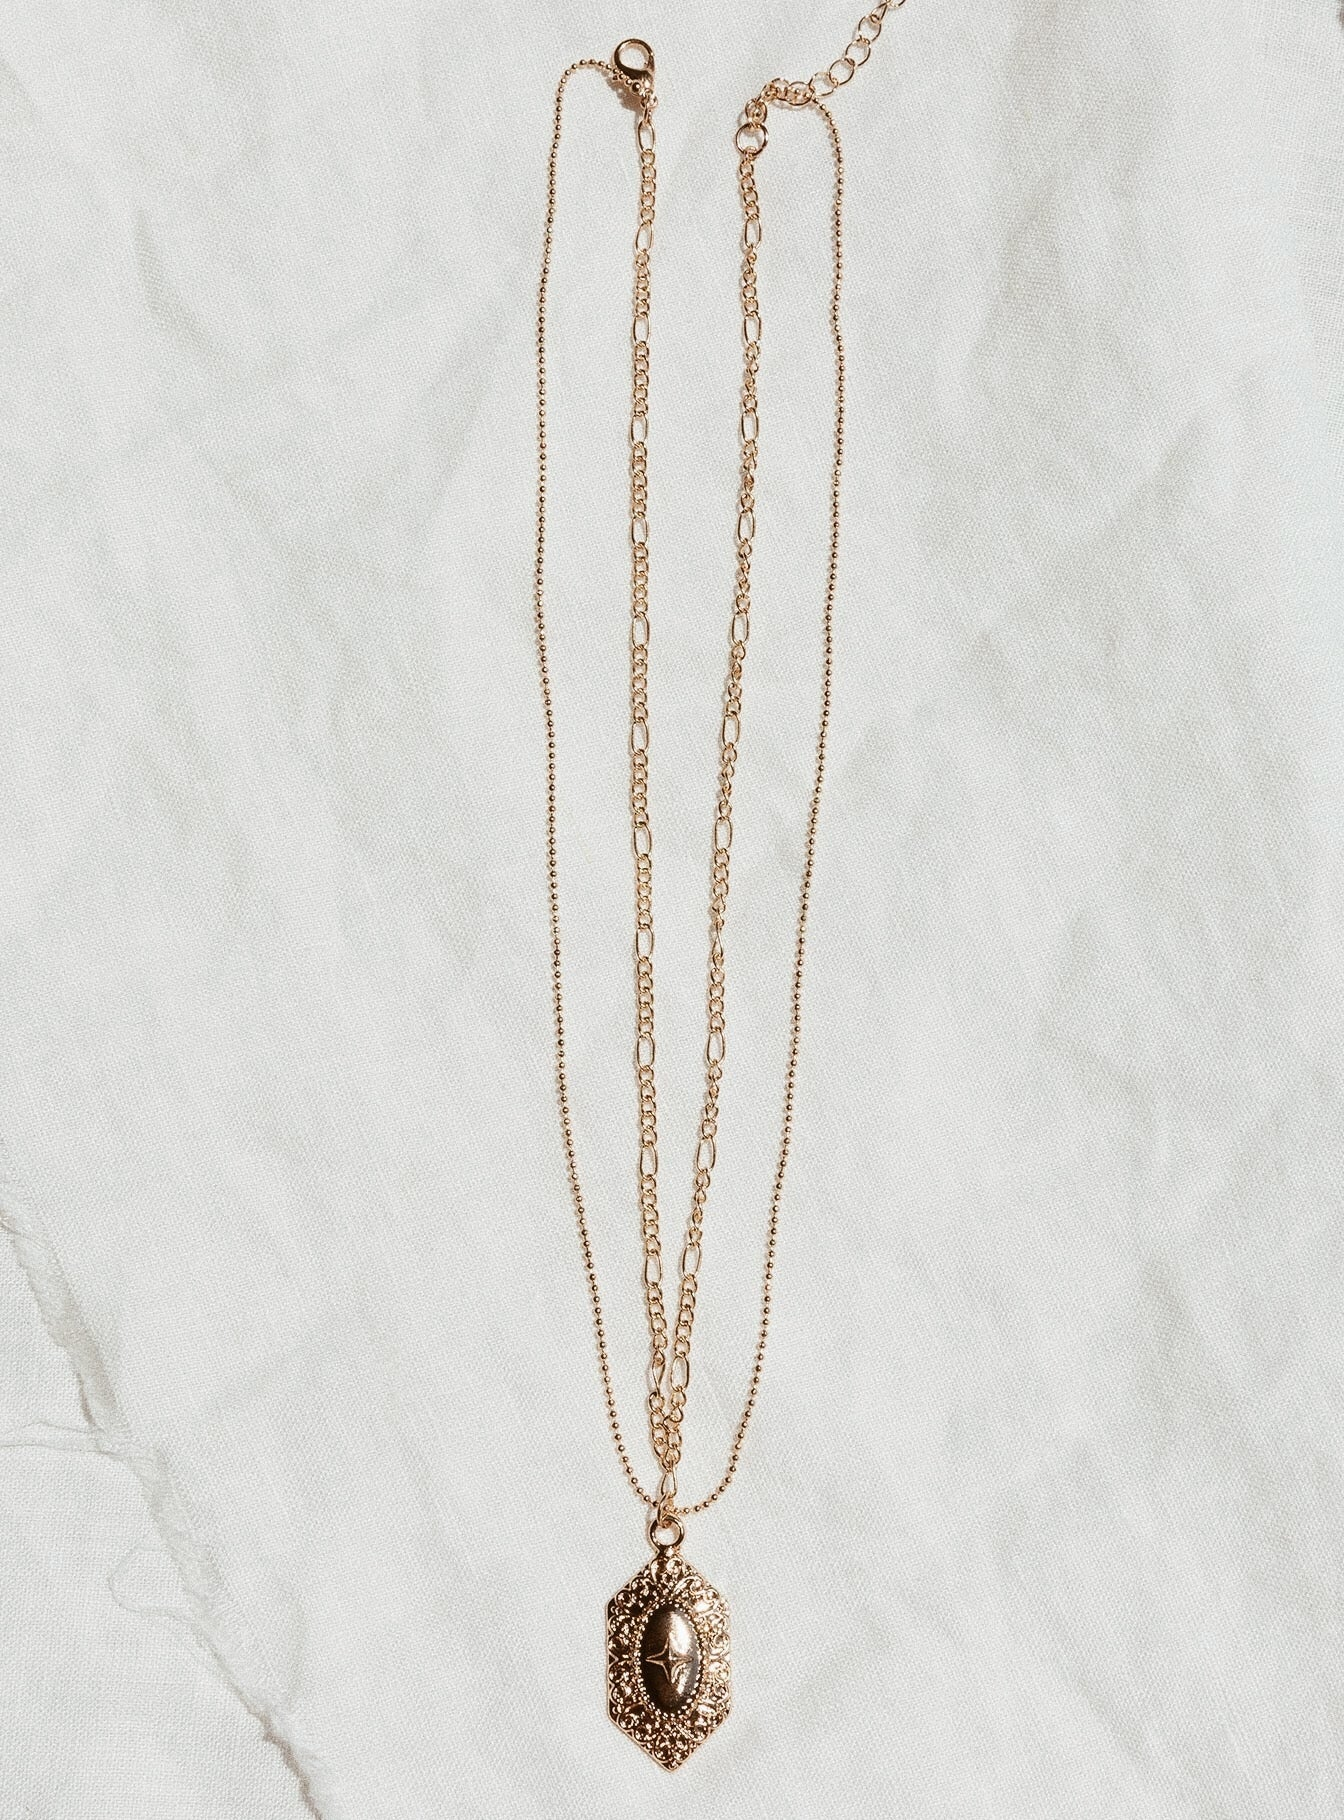 Boschetti Necklace Gold